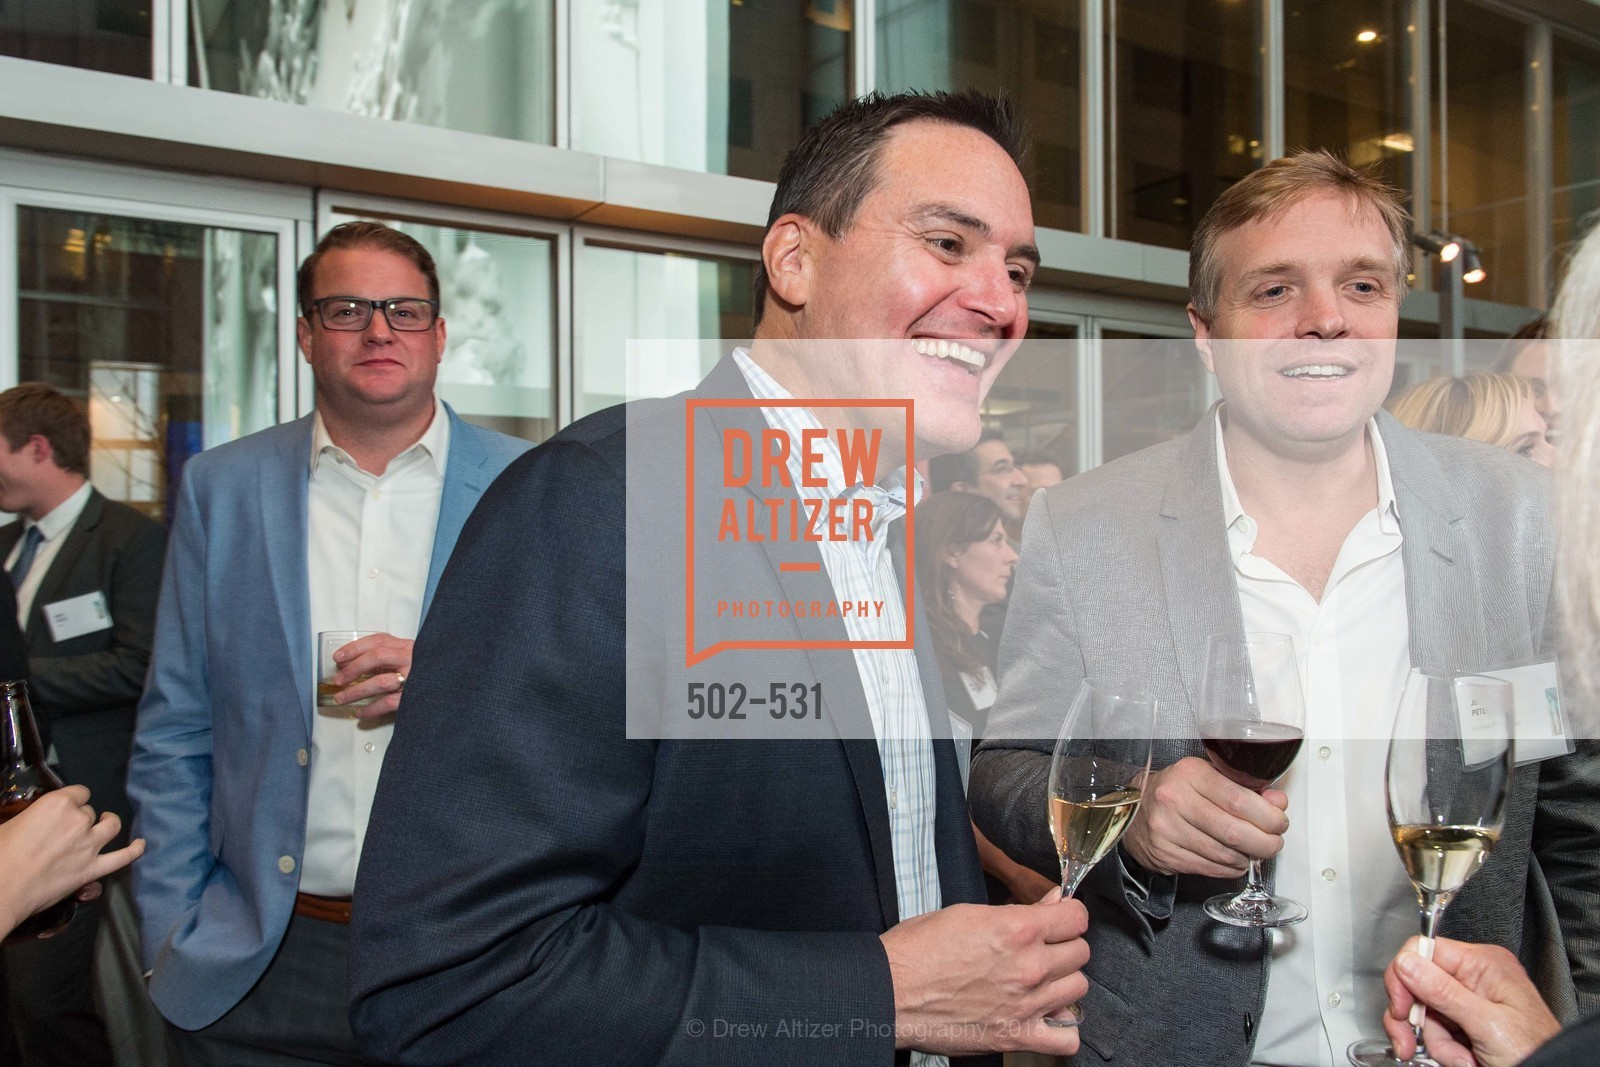 Charles Gehring, Jeff Peters, Kilroy Unveiling Presents Virtual Depictions: San Francisco by Refik Anadol, 350 Mission Street. 350 Mission Street, November 16th, 2015,Drew Altizer, Drew Altizer Photography, full-service agency, private events, San Francisco photographer, photographer california